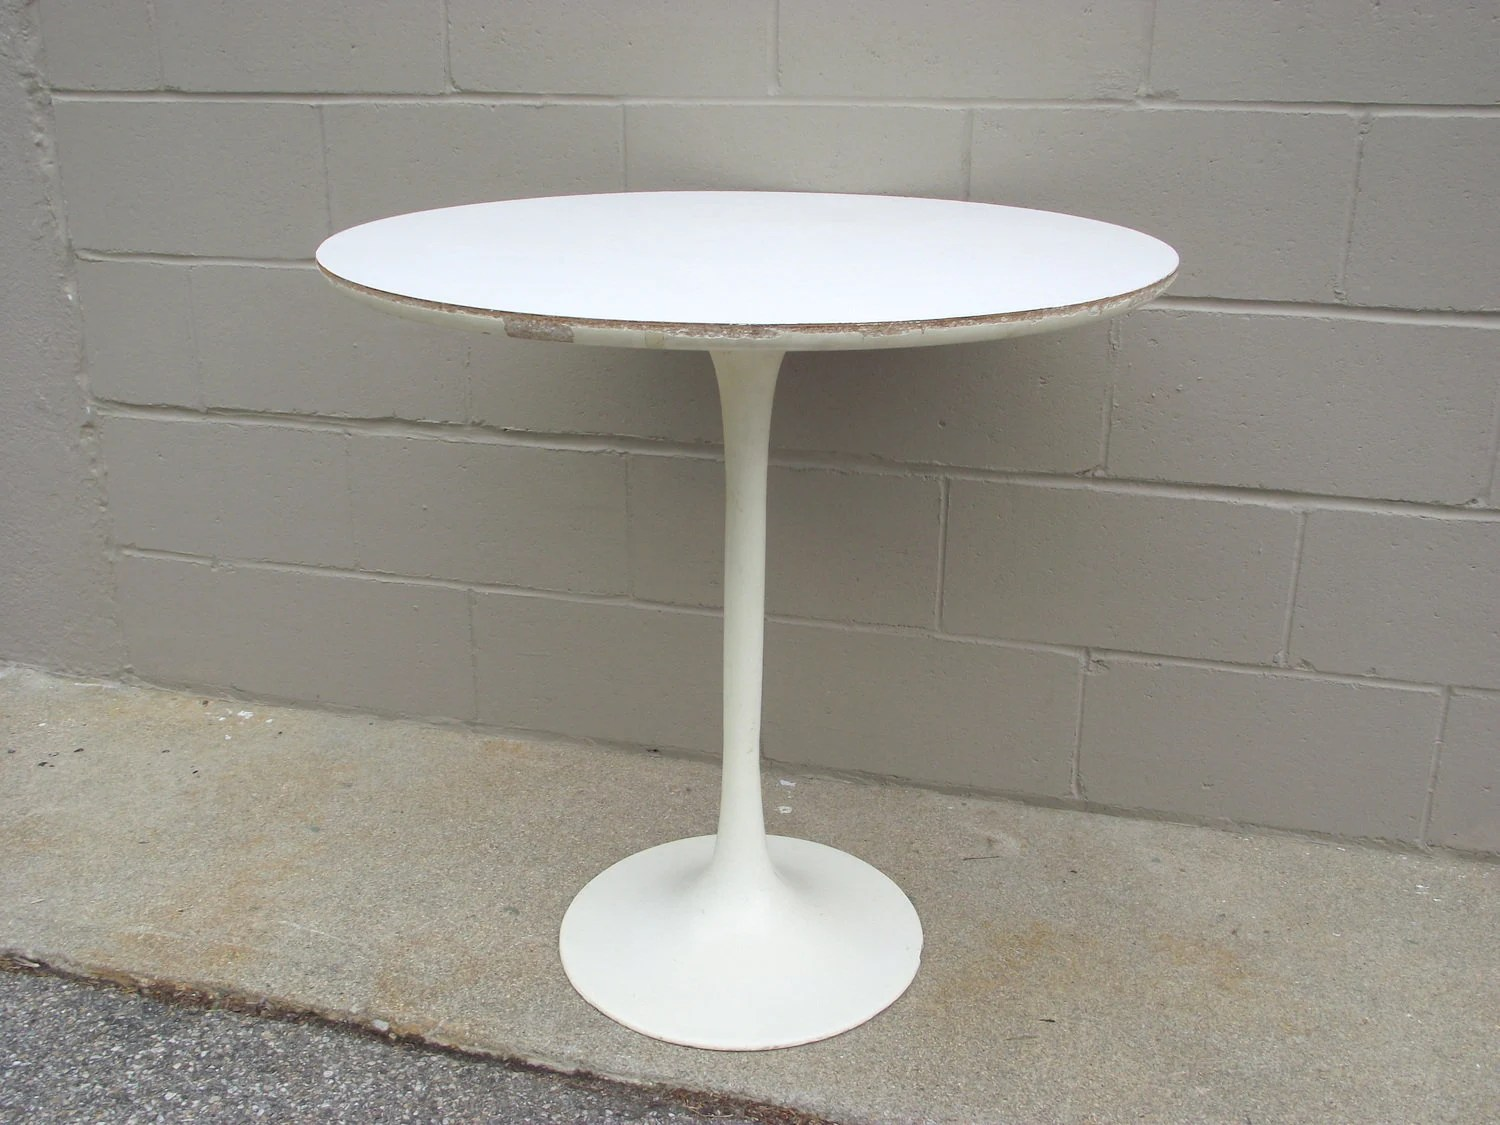 Saarinen Knoll Table 1960 S Saarinen Knoll Burke Tulip Table Mid Century Modern American Retro 30